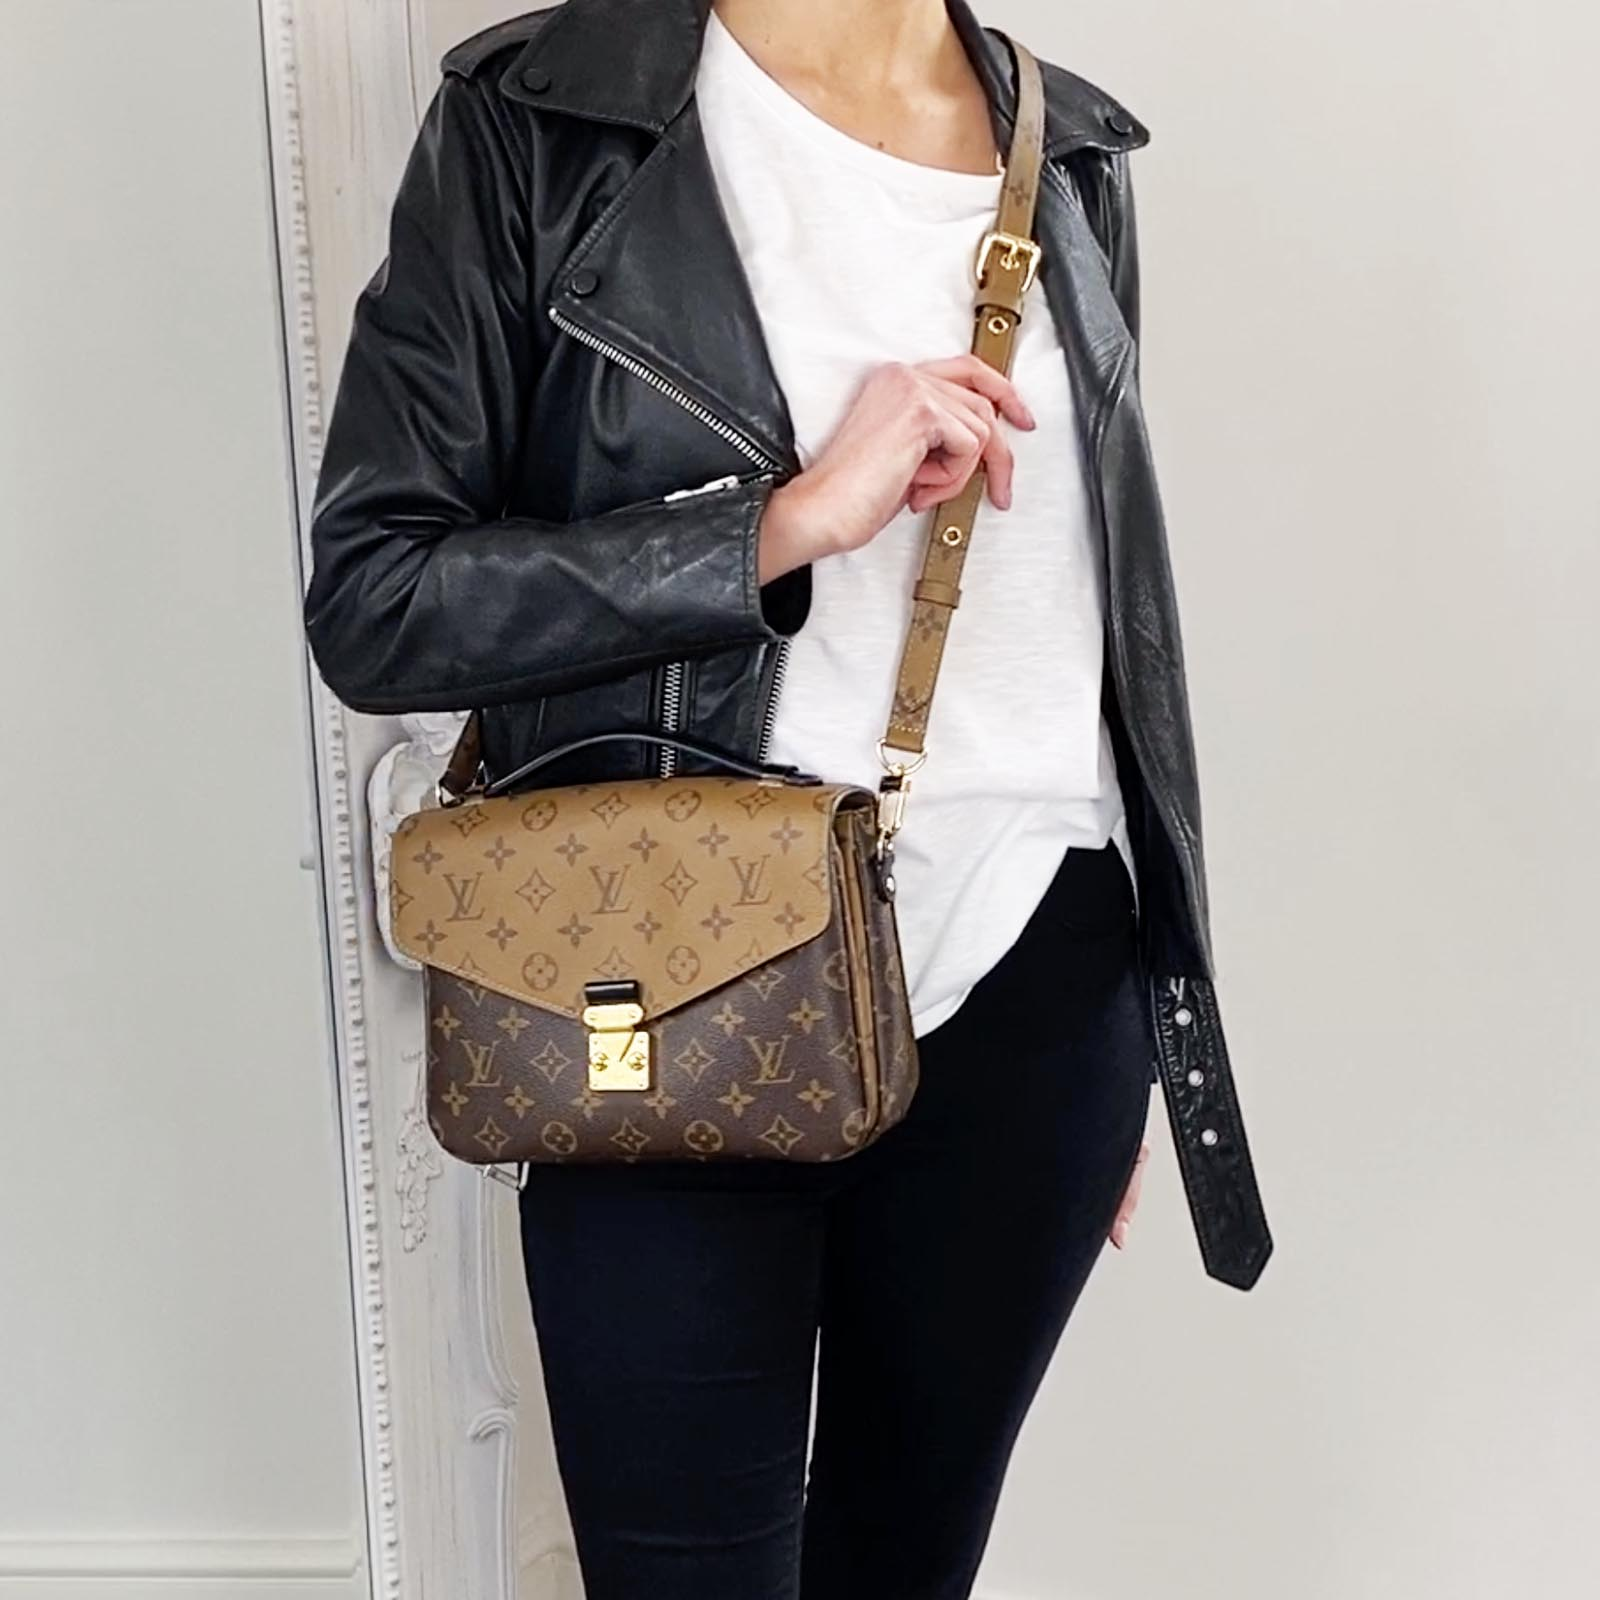 Louis-Vuitton-Pochette-Metis-reverse-monogram-bag-styled-with-leather-jacket-and-jeans